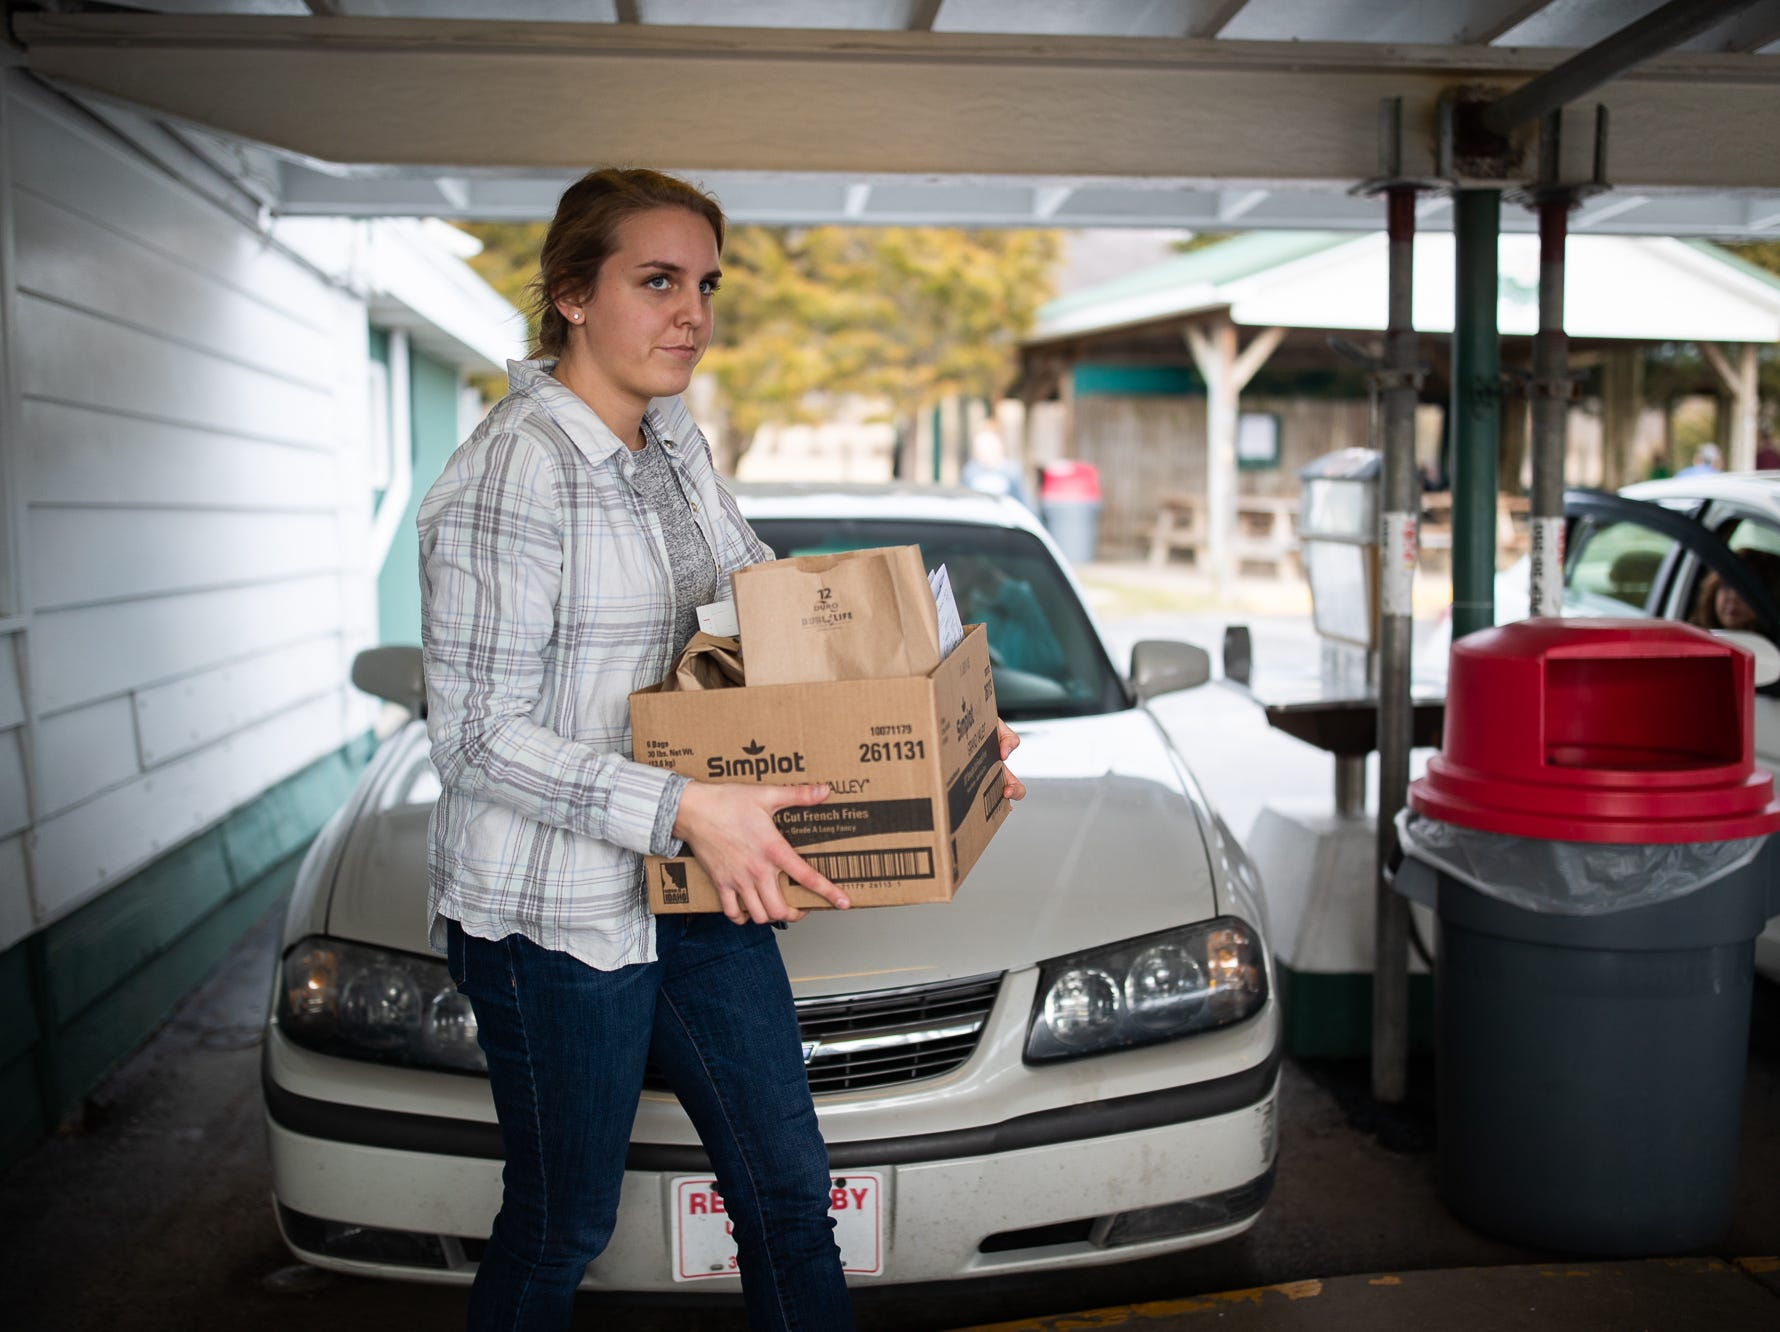 Employees carry food orders to customers during Tropical Treat's first day of business for the 2019 season, Wednesday, March 13, 2019, in Berwick Township.